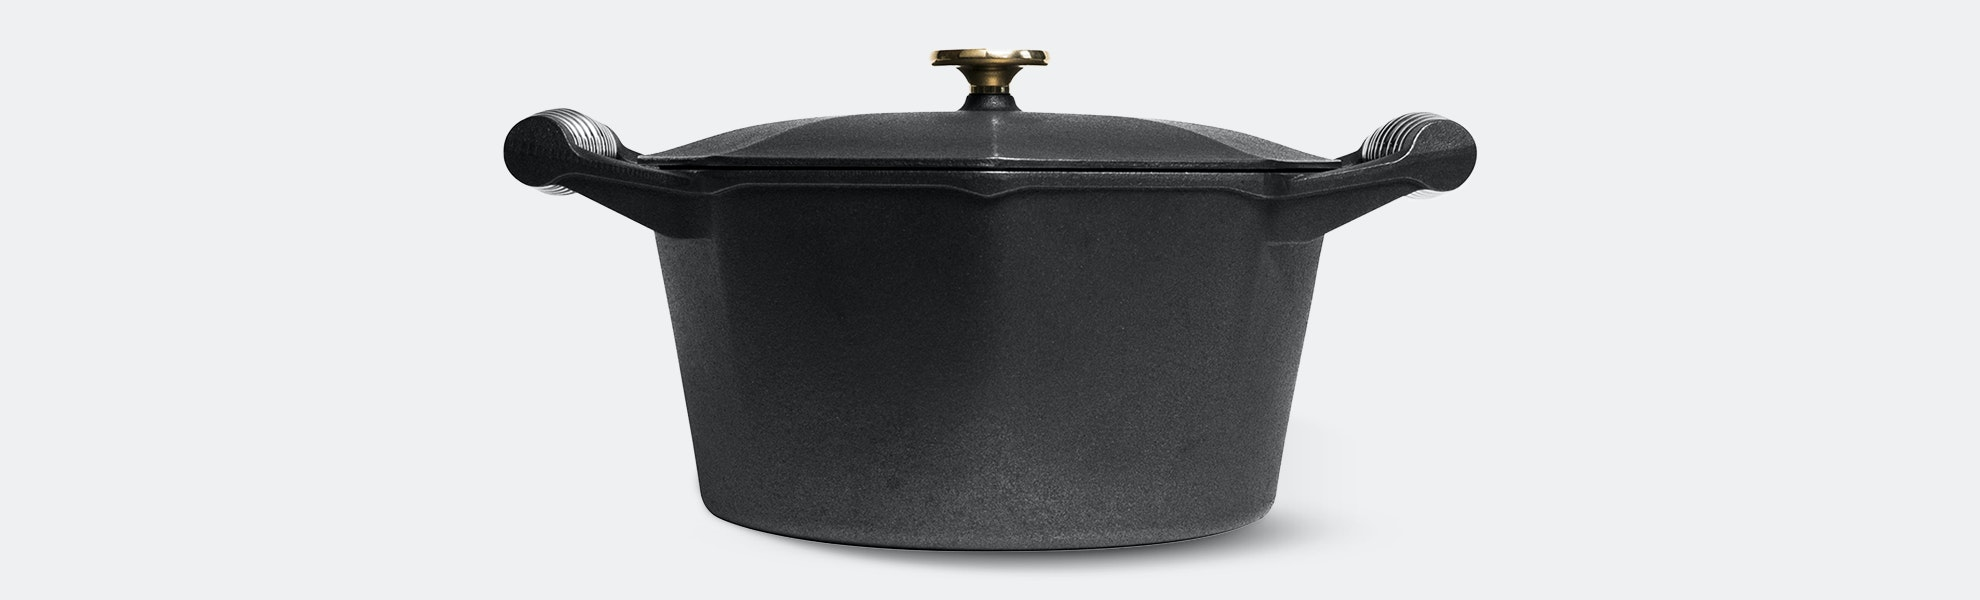 FINEX Cast Iron Dutch Oven